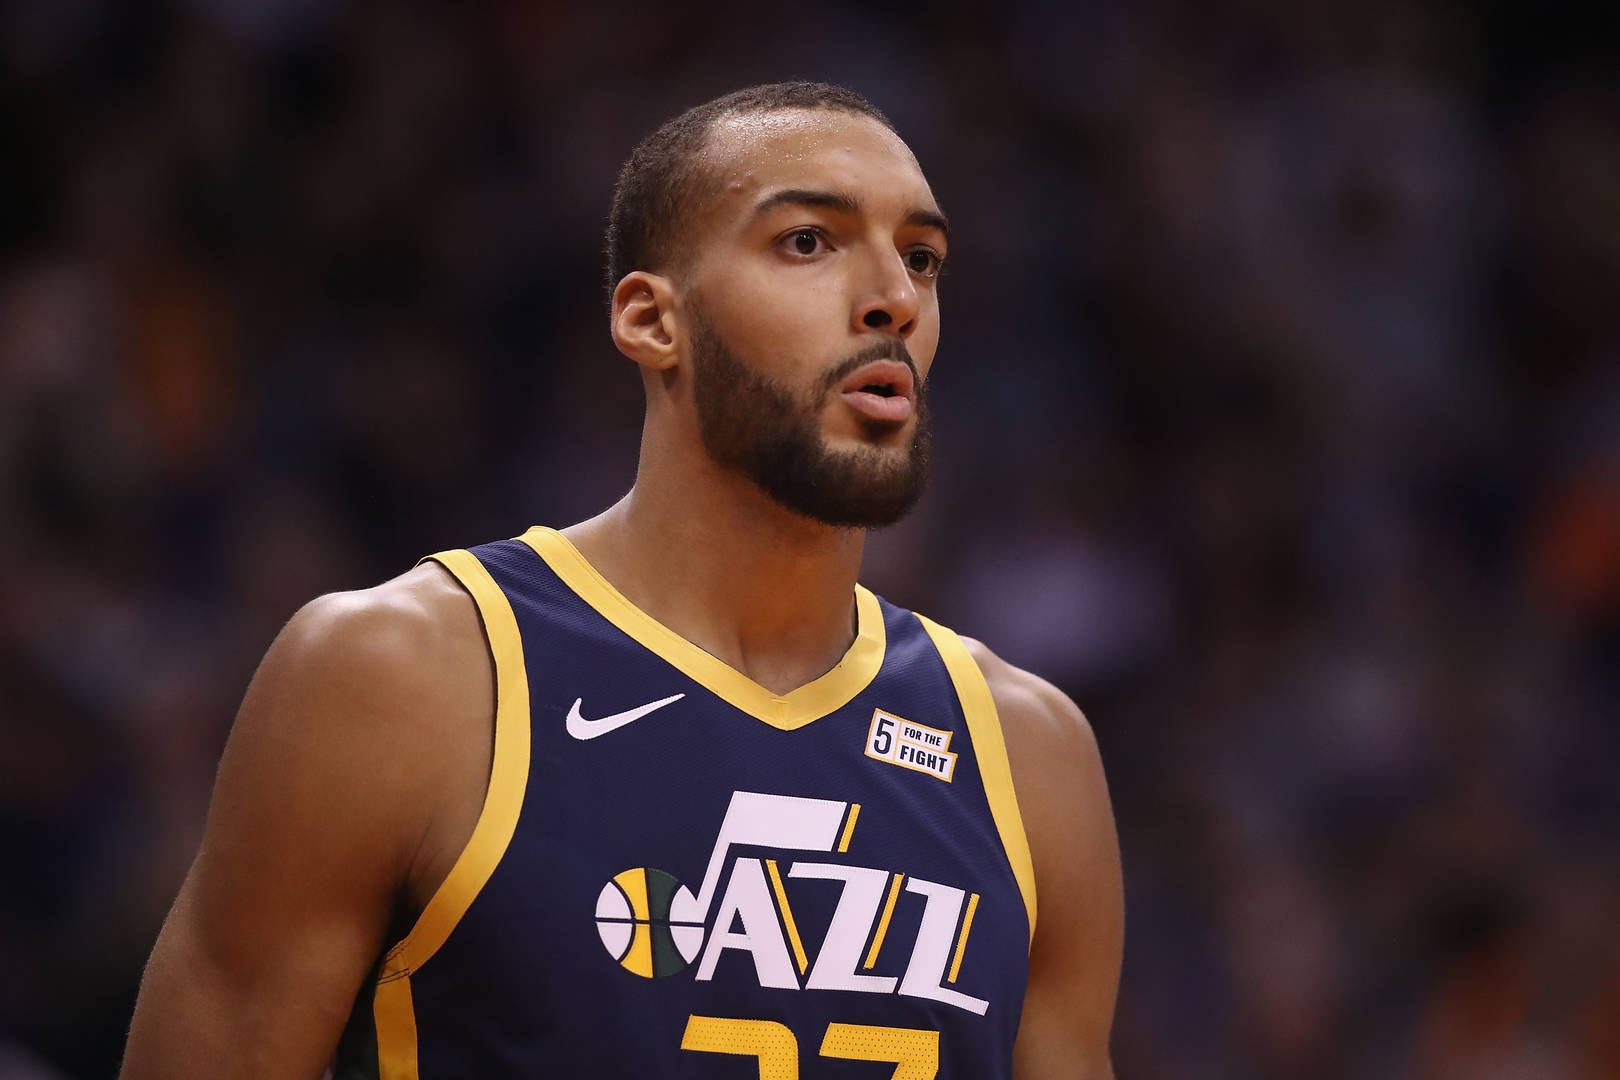 Rudy Gobert still hasn't fully recovered months after his positive coronavirus test